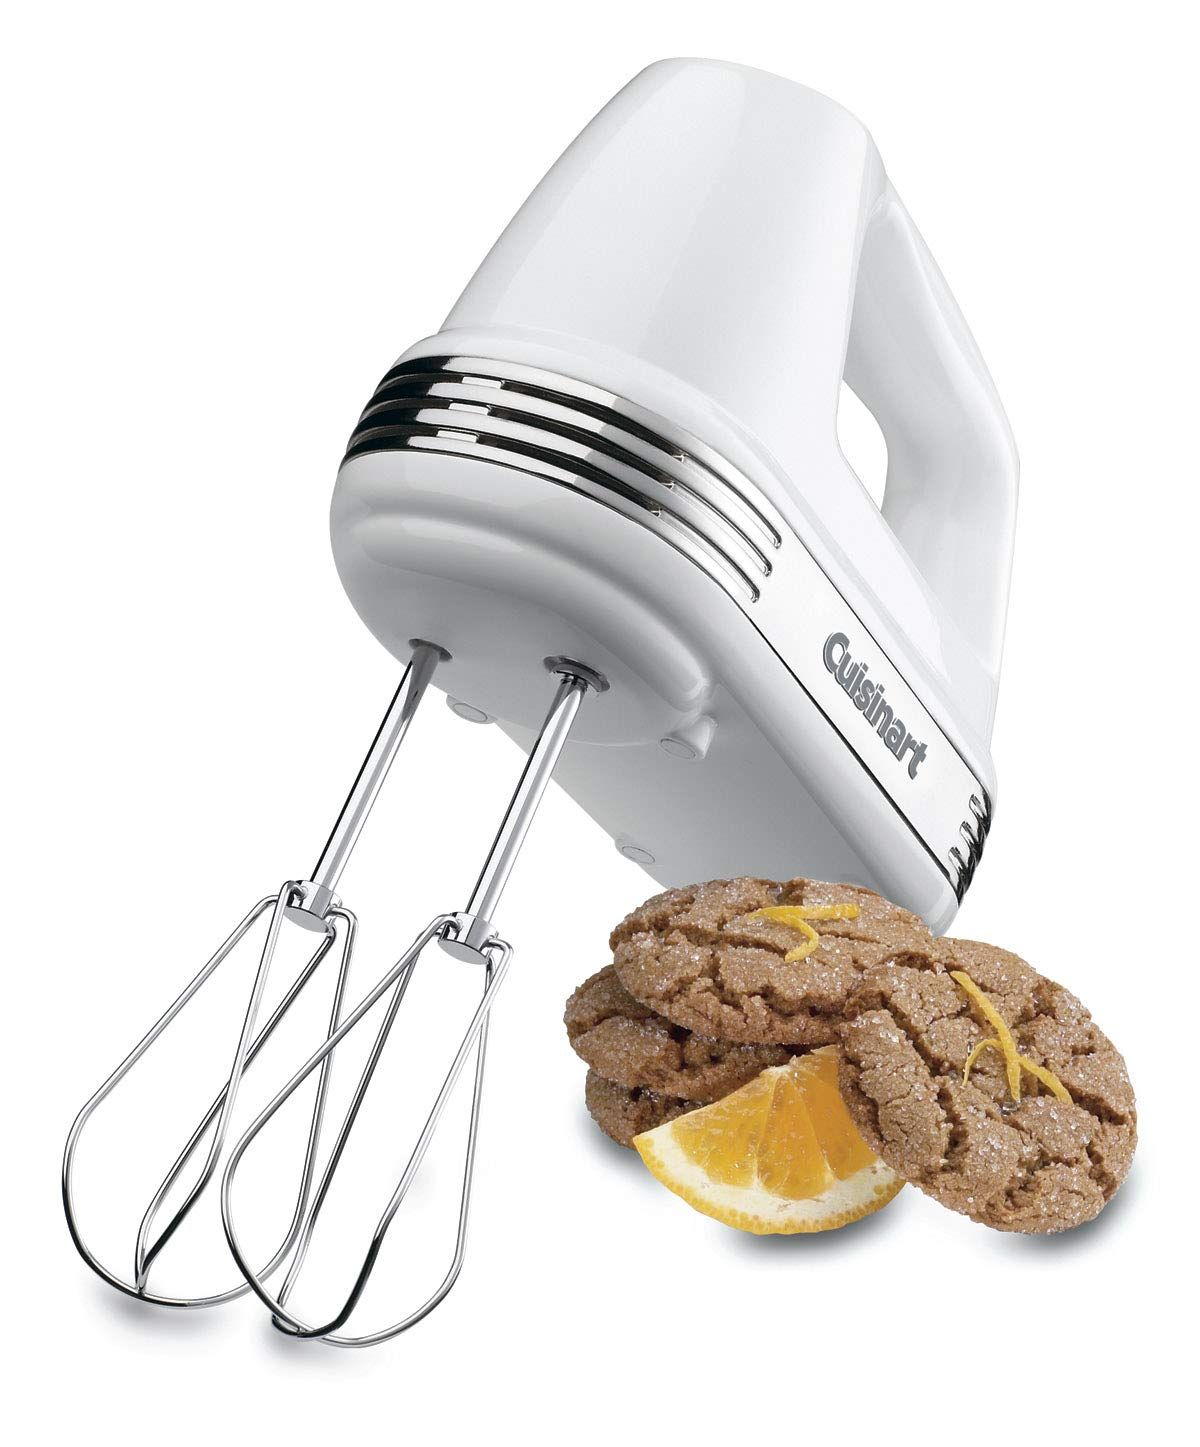 Cuisinart HM-50 Power Advantage 5-Speed Hand Mixer, White by Cuisinart